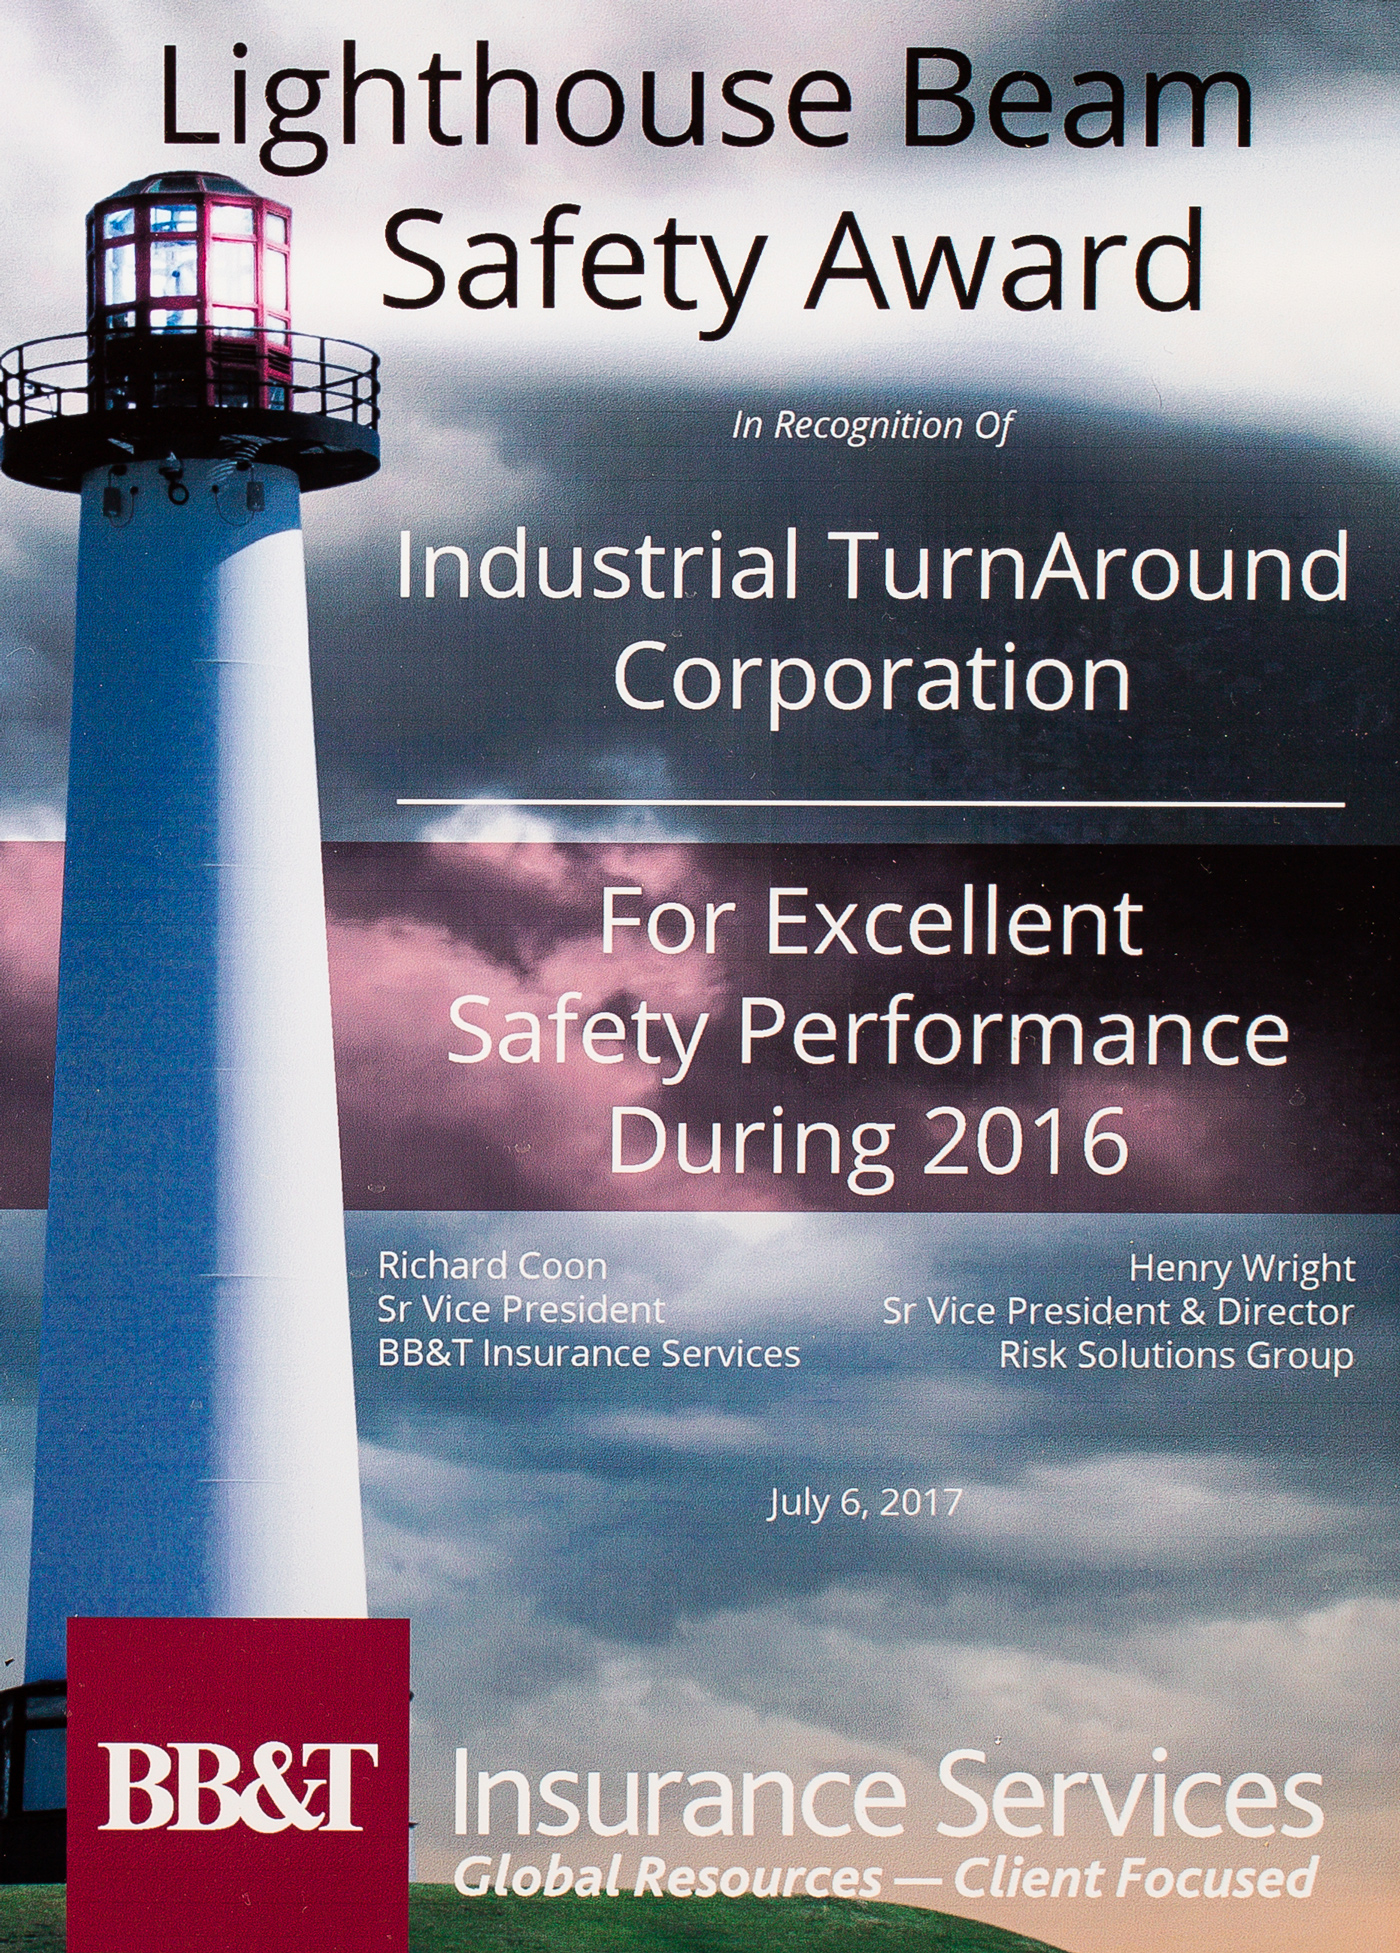 Lighthouse Beam Safety Award from BB&T for ITAC